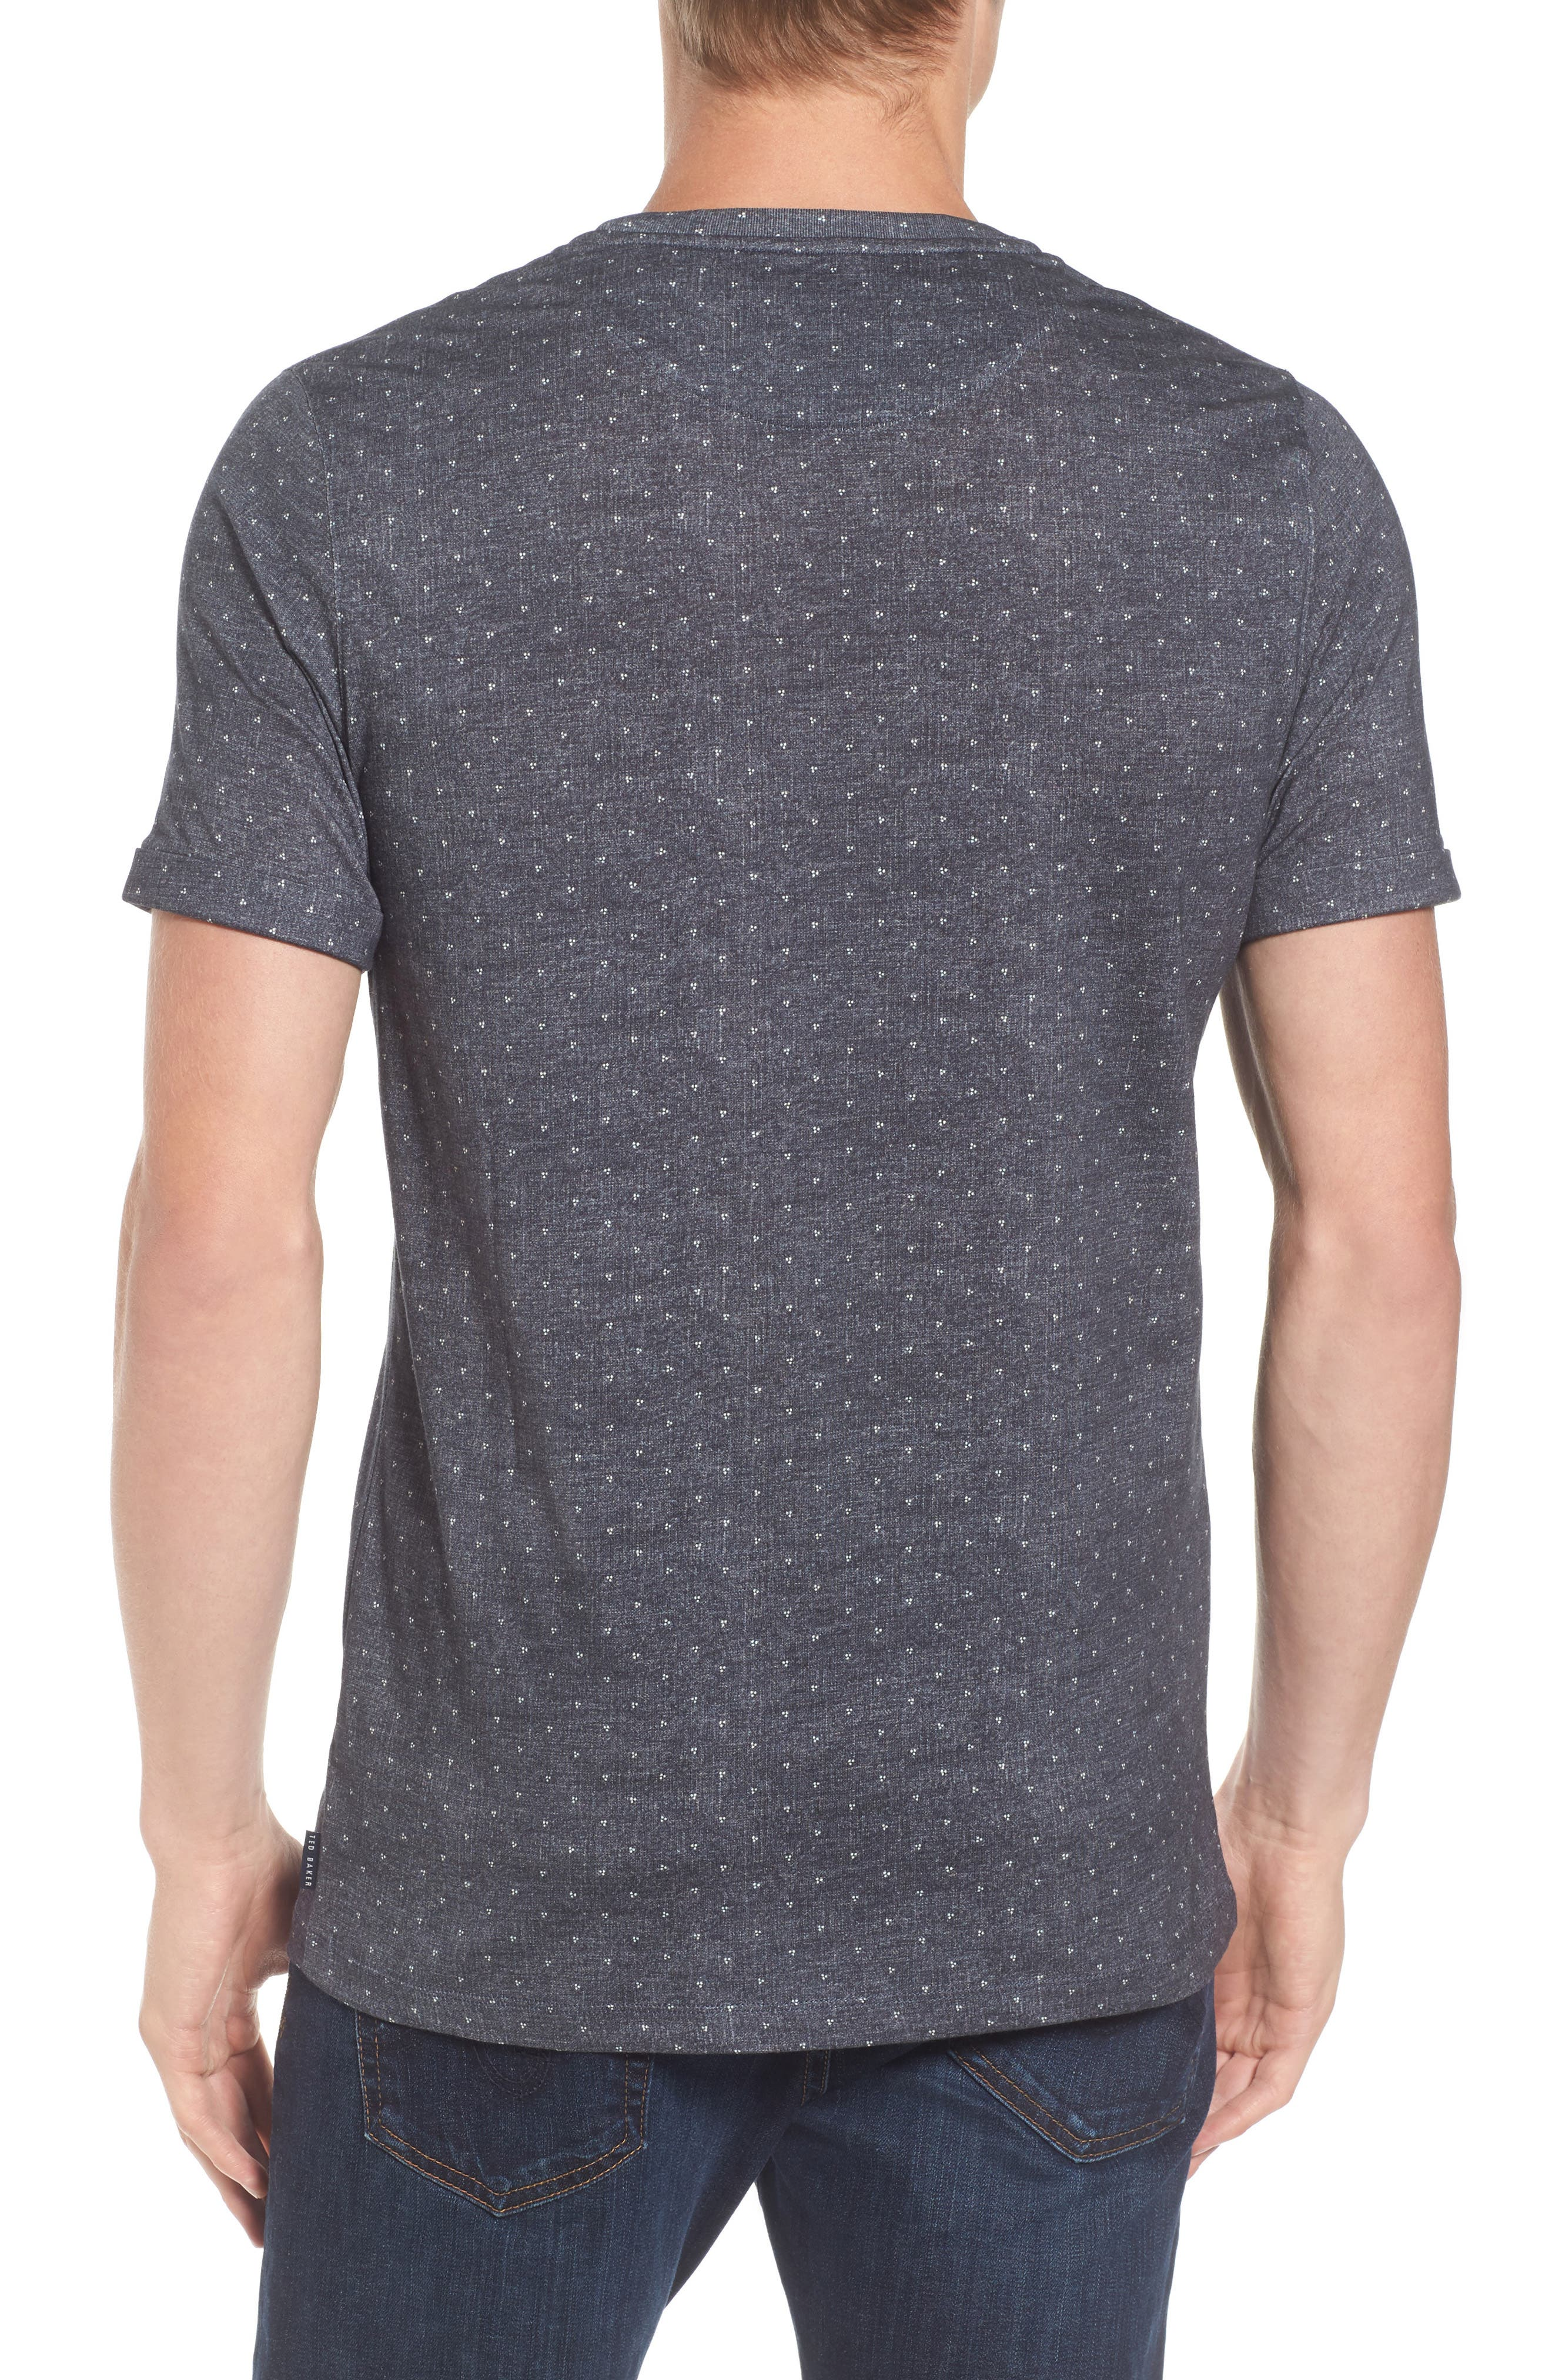 Giovani Modern Slim Fit Print T-Shirt,                             Alternate thumbnail 2, color,                             410